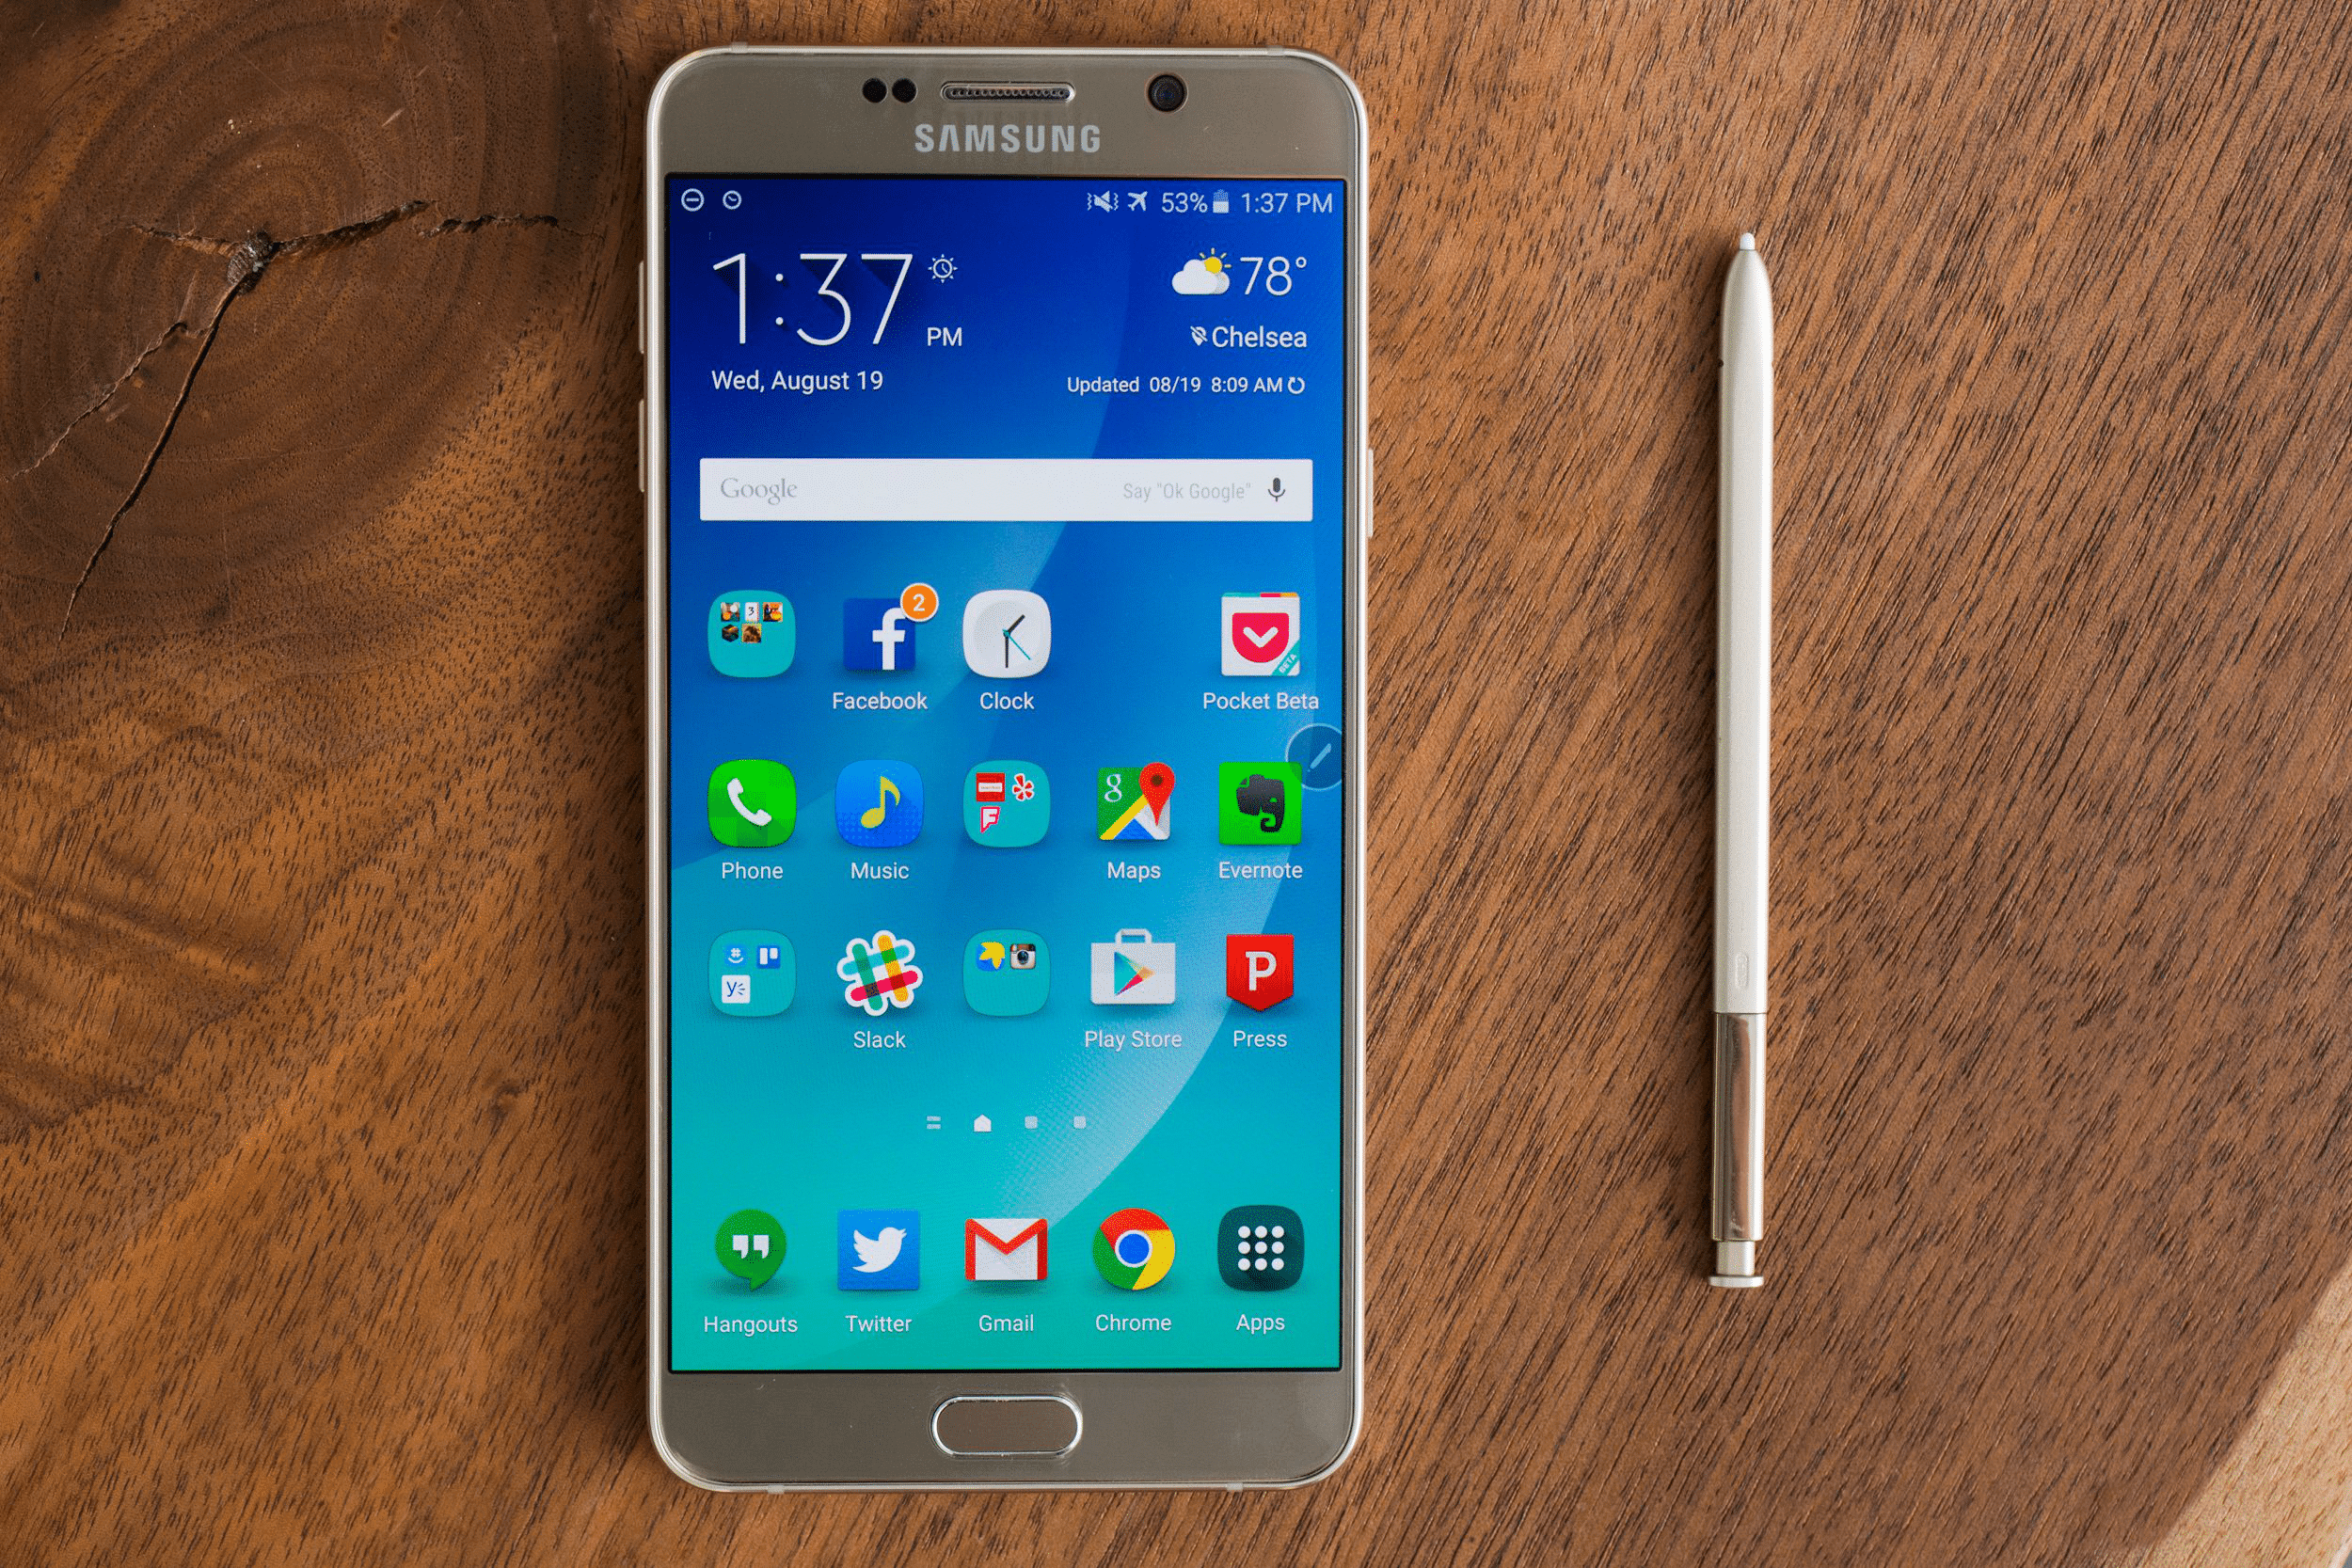 Update Samsung Galaxy Note 5 To Android 7.0 Nougat via Nemesis Custom ROM 1